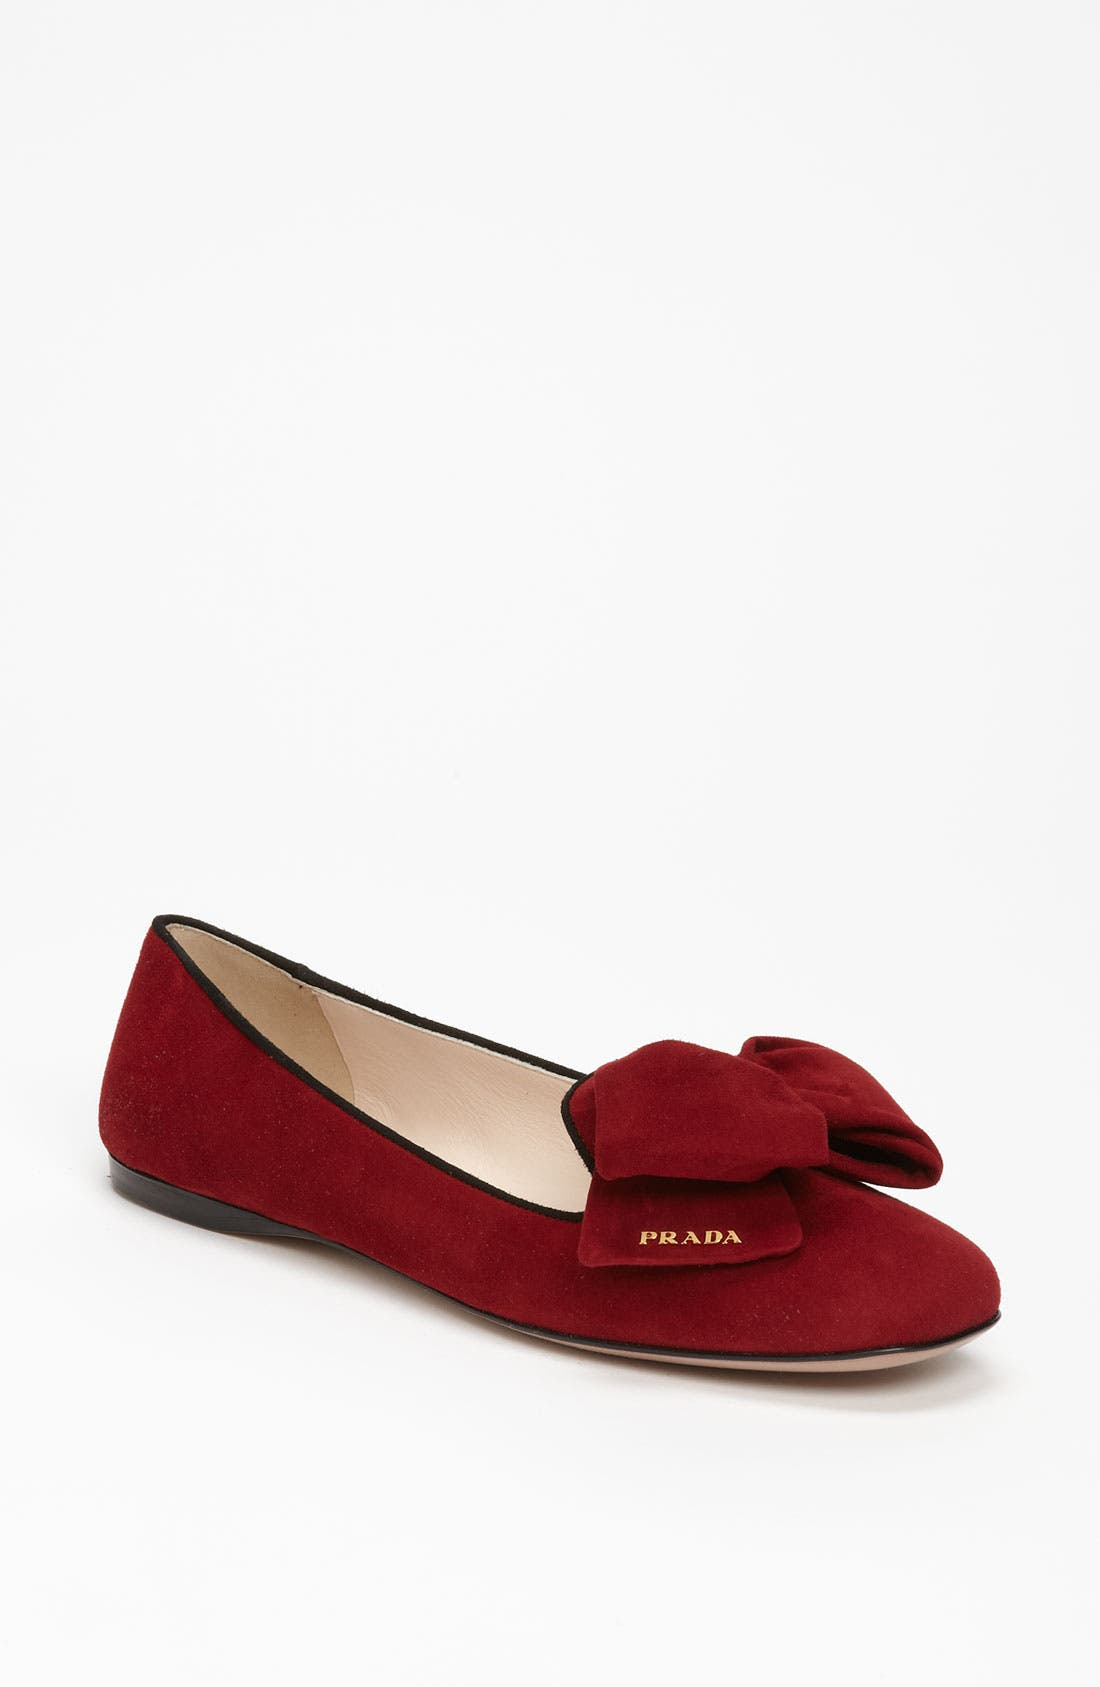 Main Image - Prada Bow Slipper